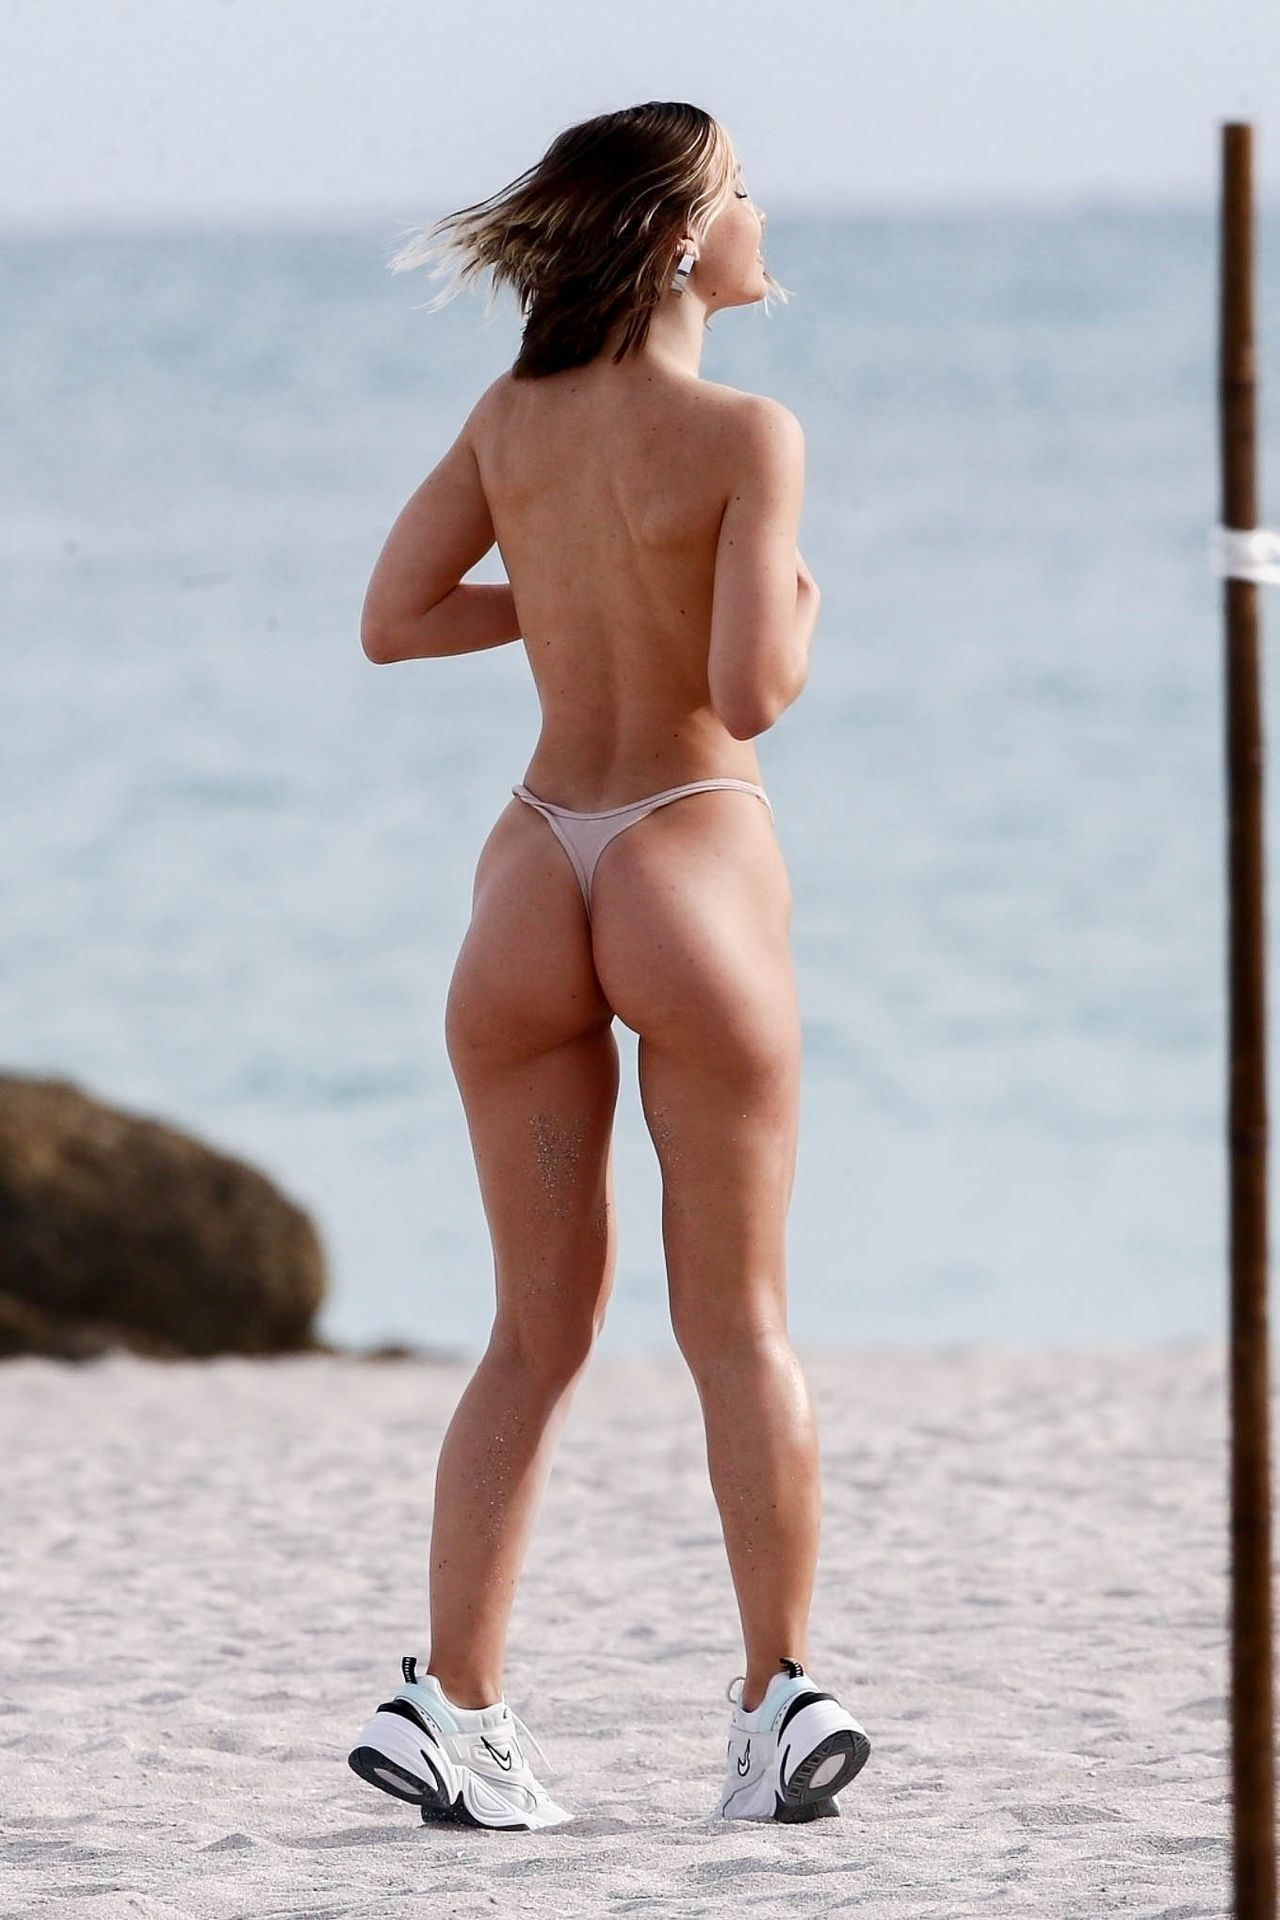 Jane Soul Topless Covered and Ass, Outside the Faena Hotel on Miami Beach, Florida